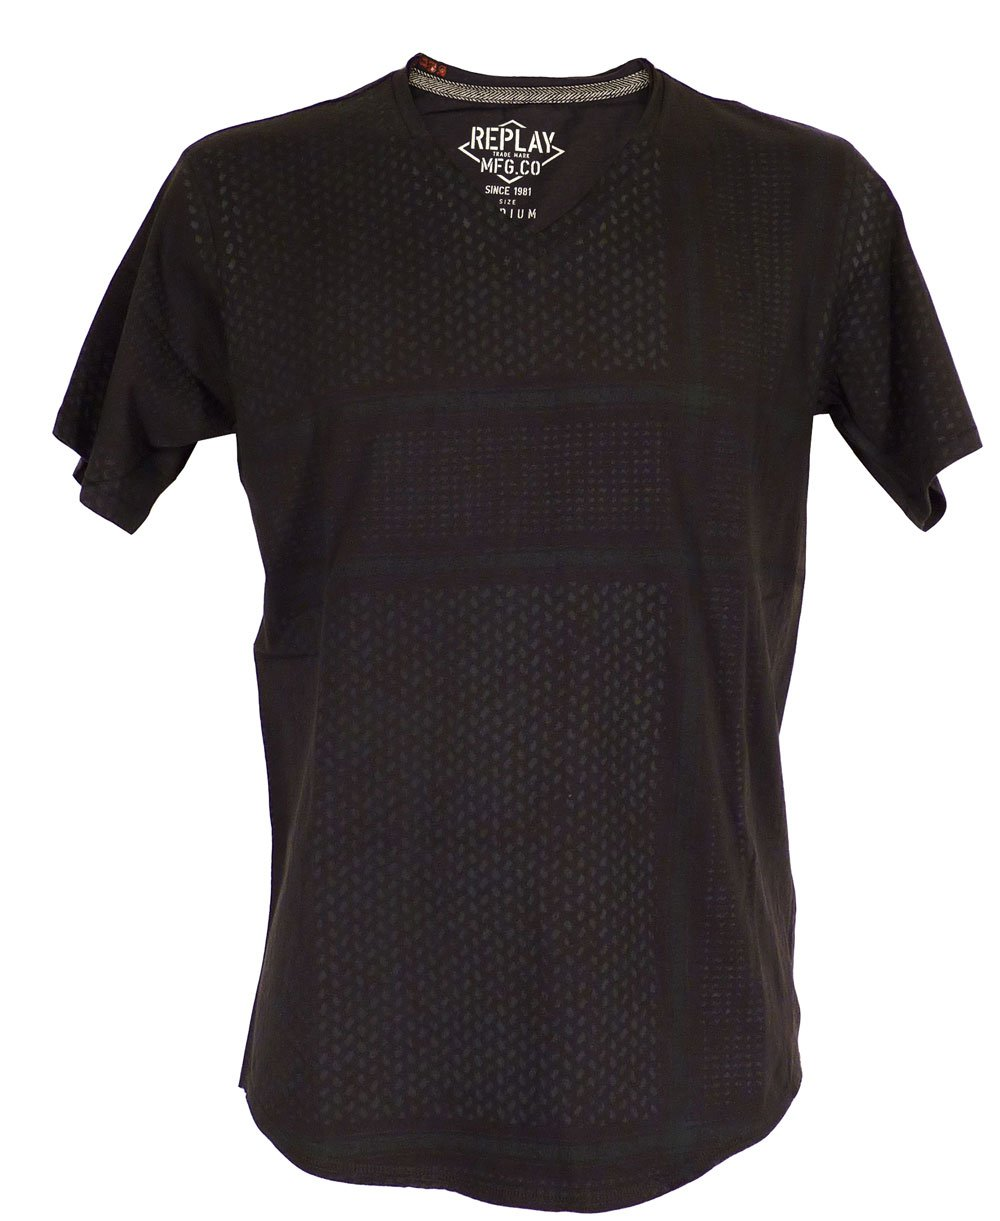 Replay Navy Design V Neck T Shirt Replay From Jonathan